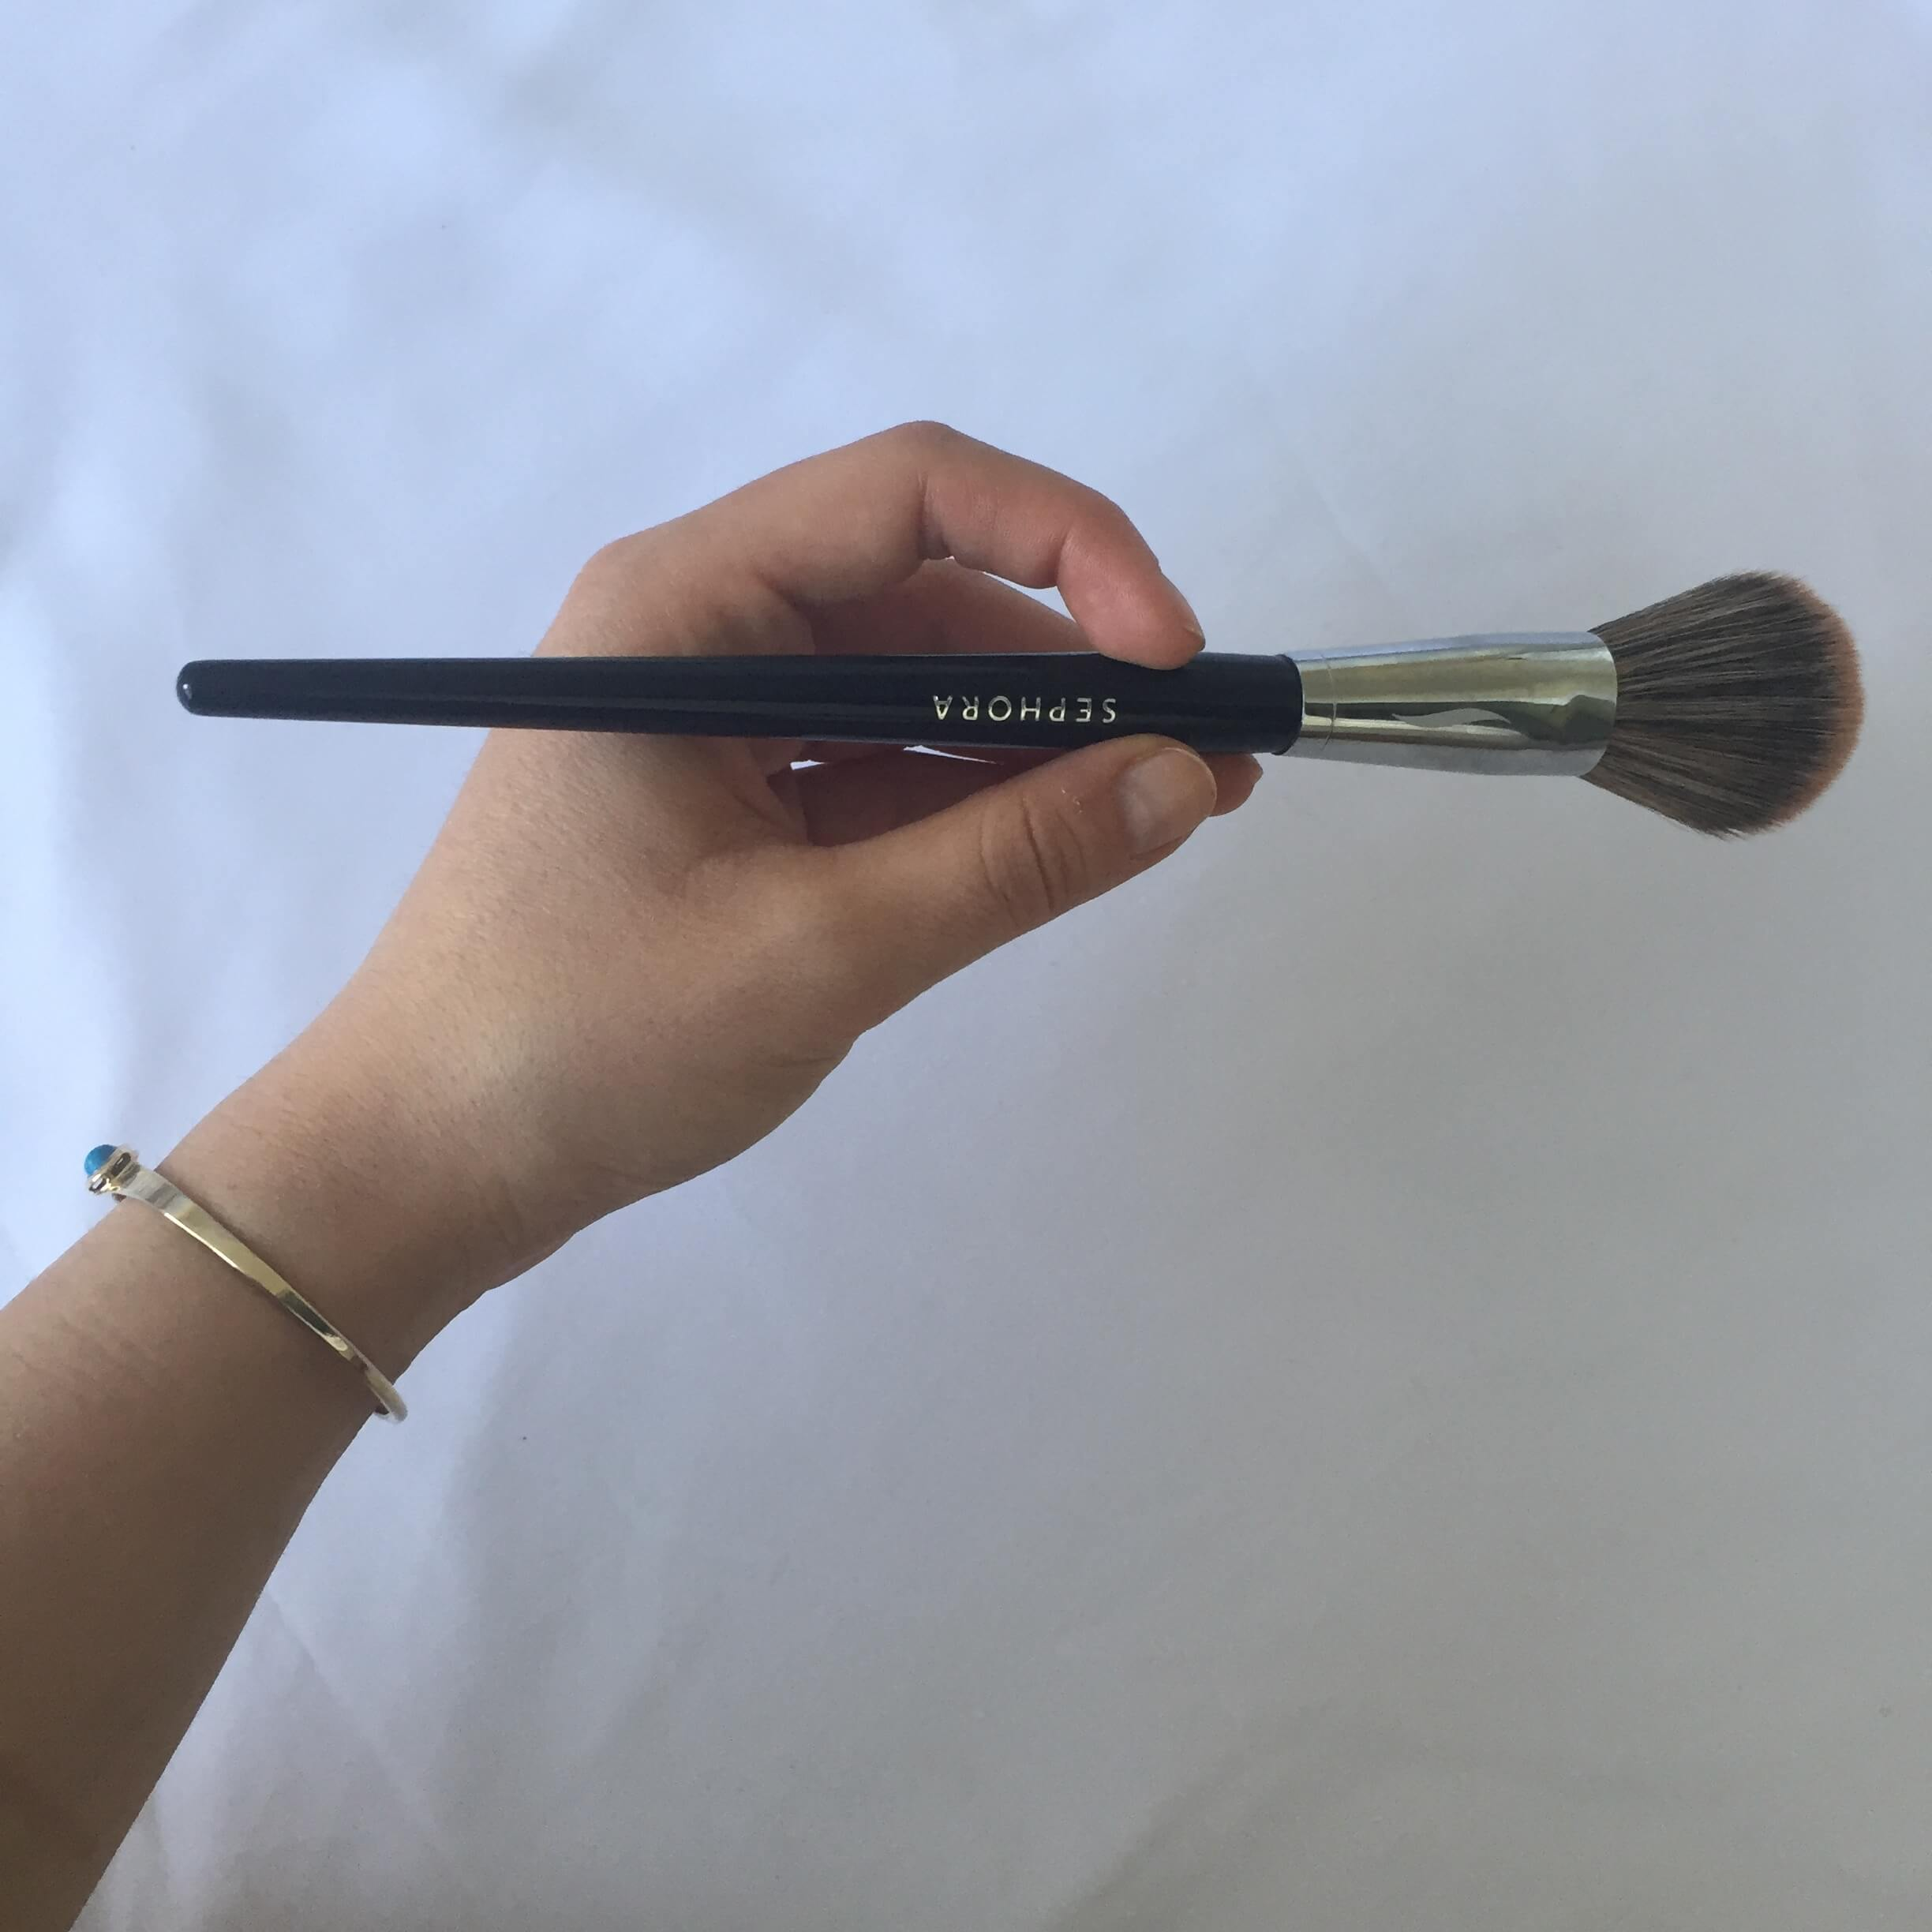 sephora airbrush #56 brush